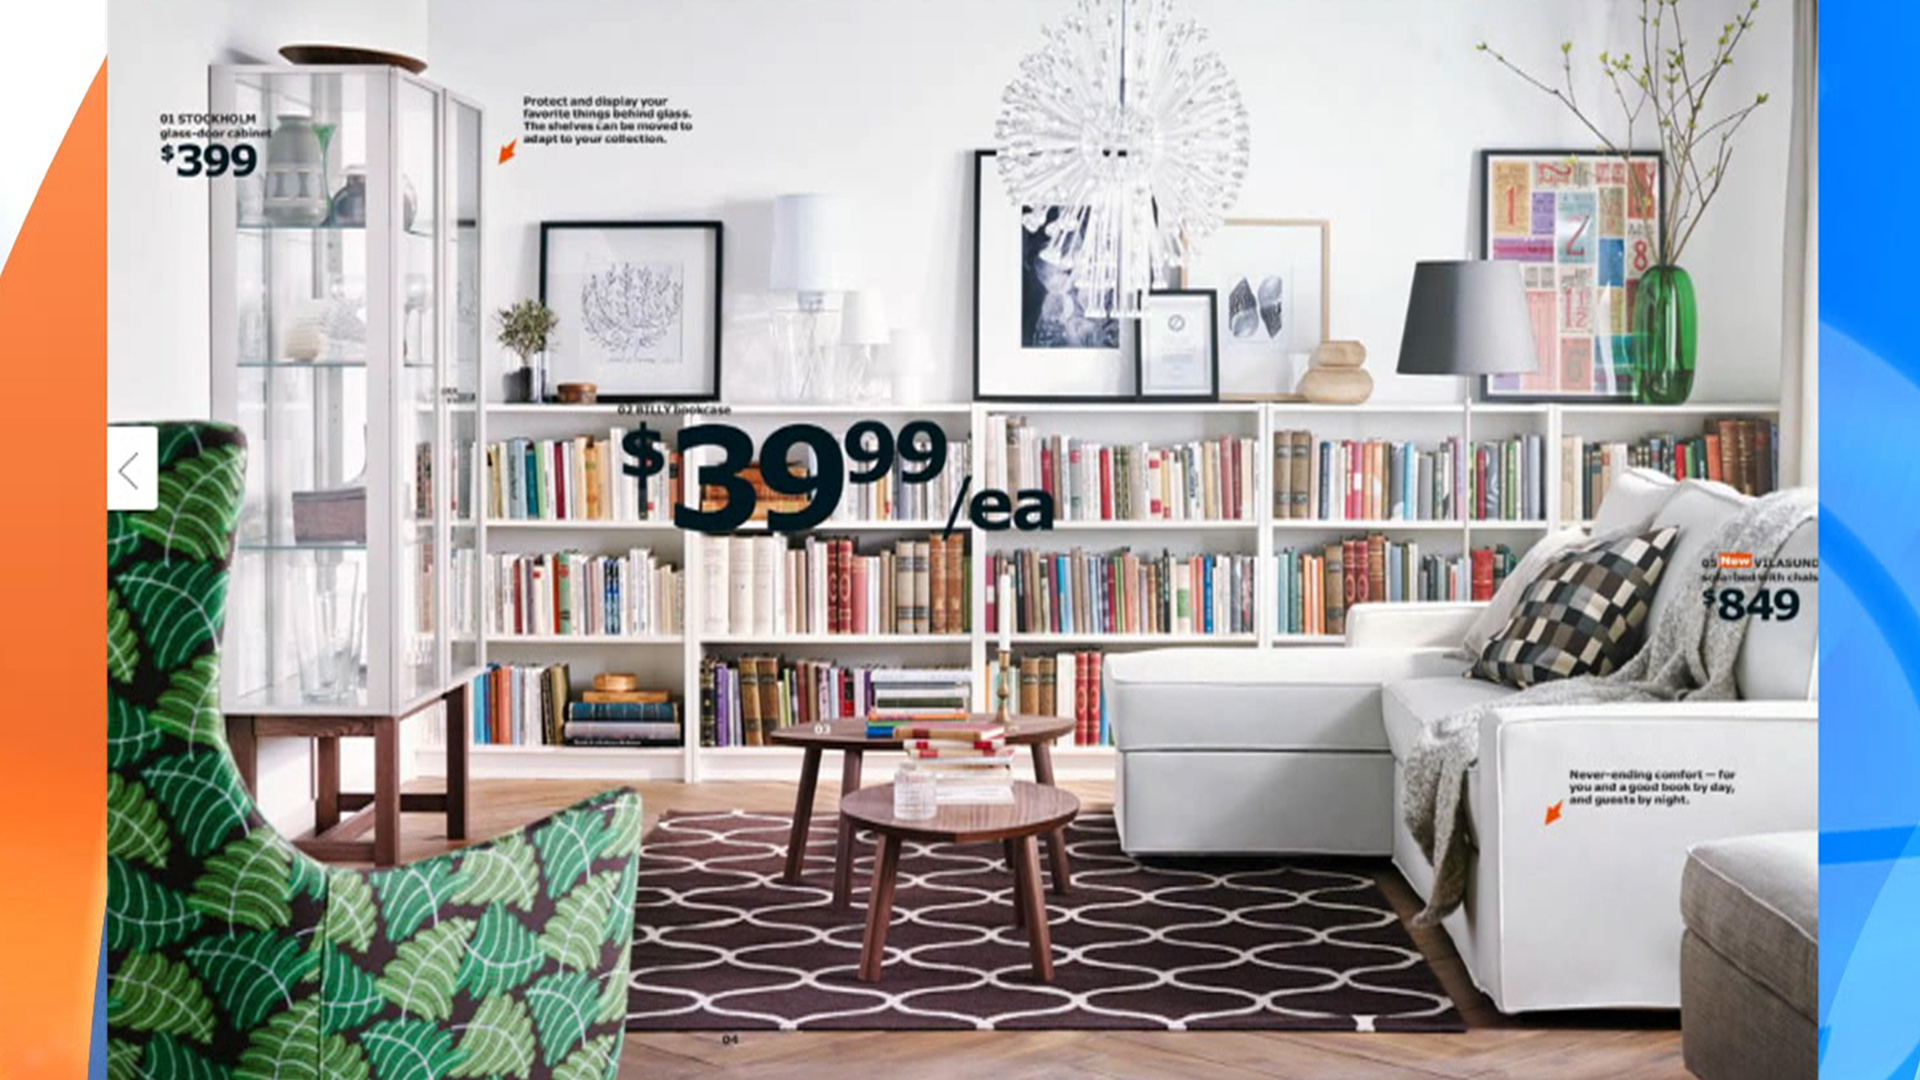 ikea reveals 75 of catalog images are cgi. Black Bedroom Furniture Sets. Home Design Ideas